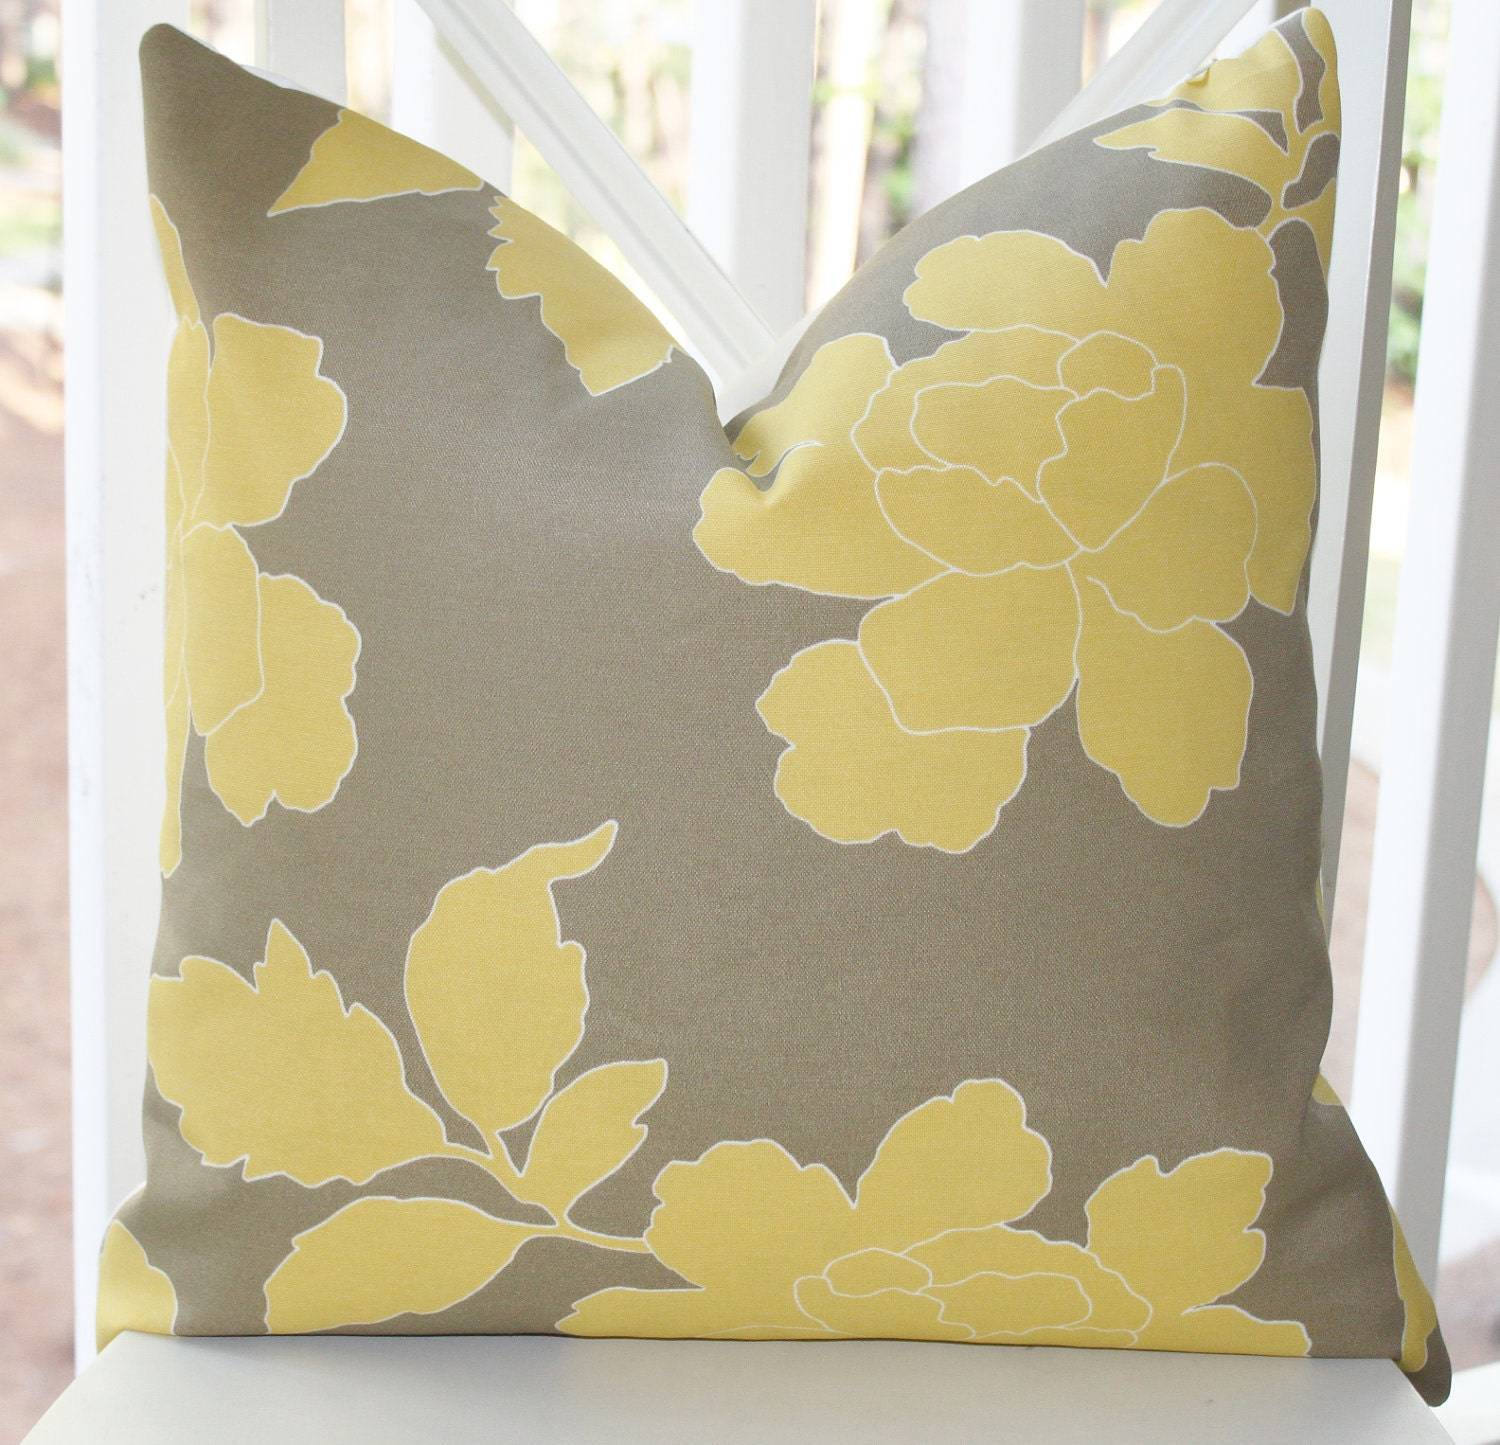 Decorative Pillow Cover Yellow Grey Dwell Studio by MotifPillows